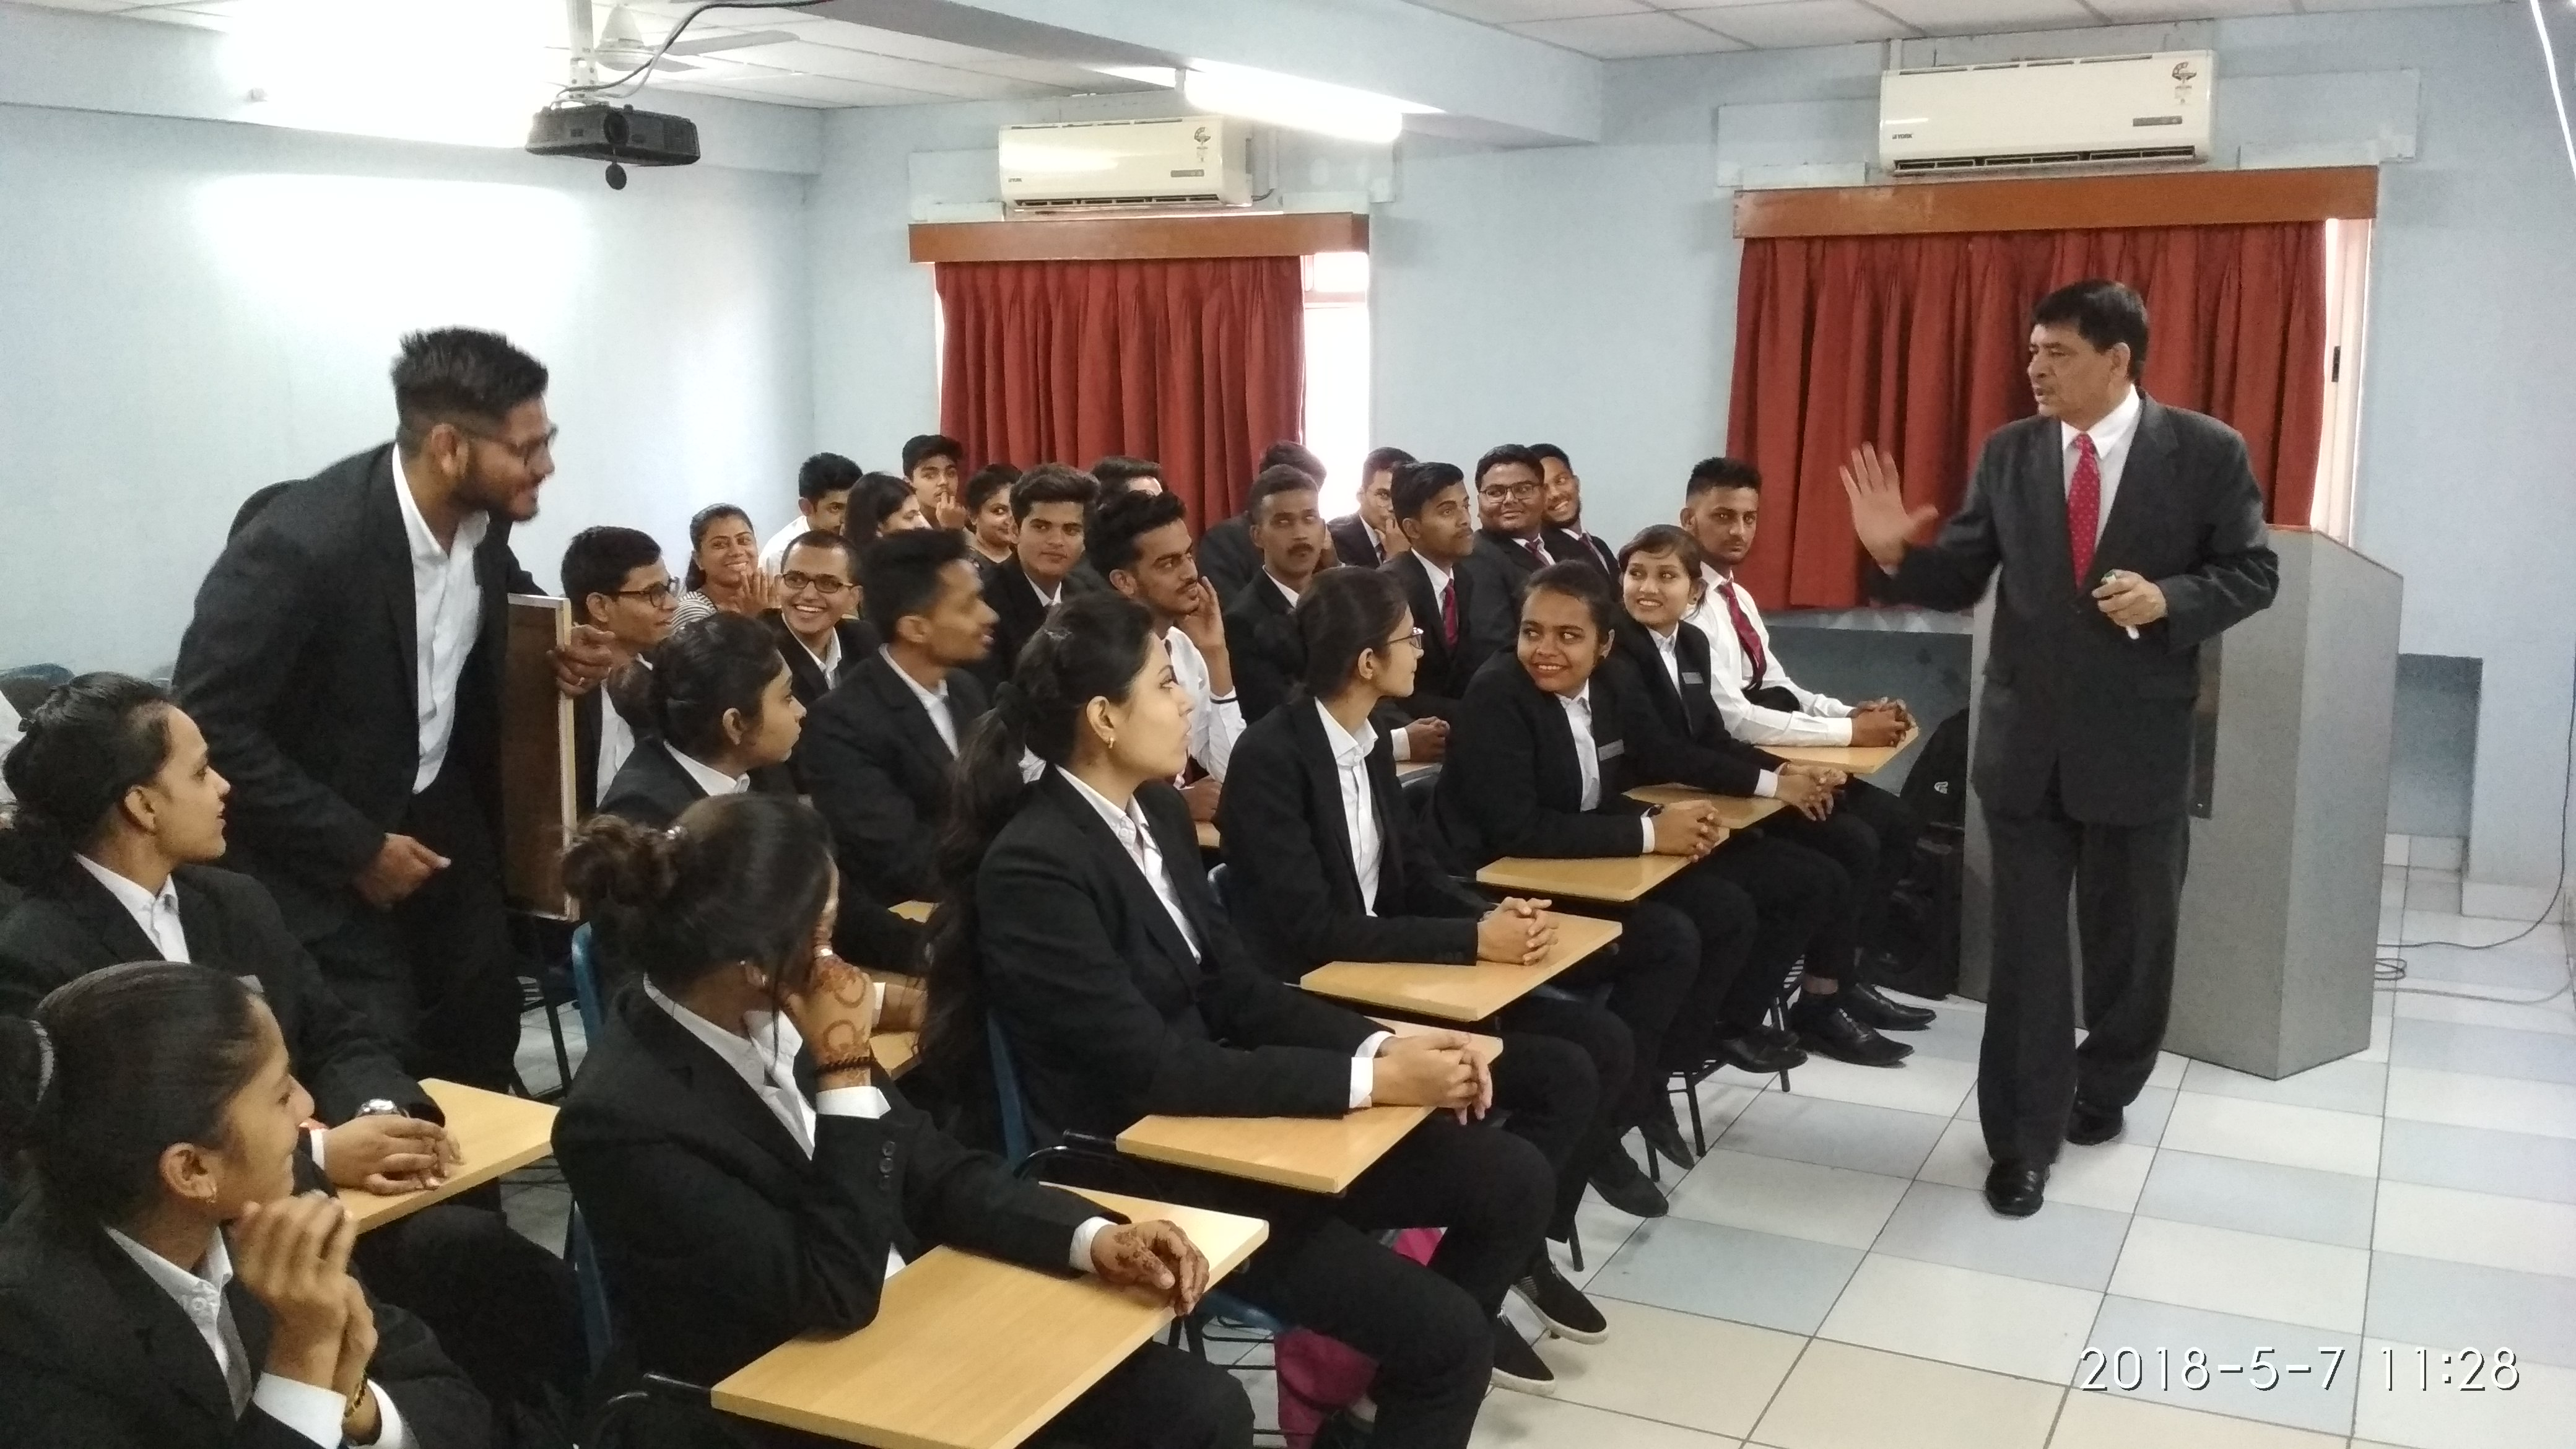 Guest lecture on how to become a good leader by Mr. Michael Ceat